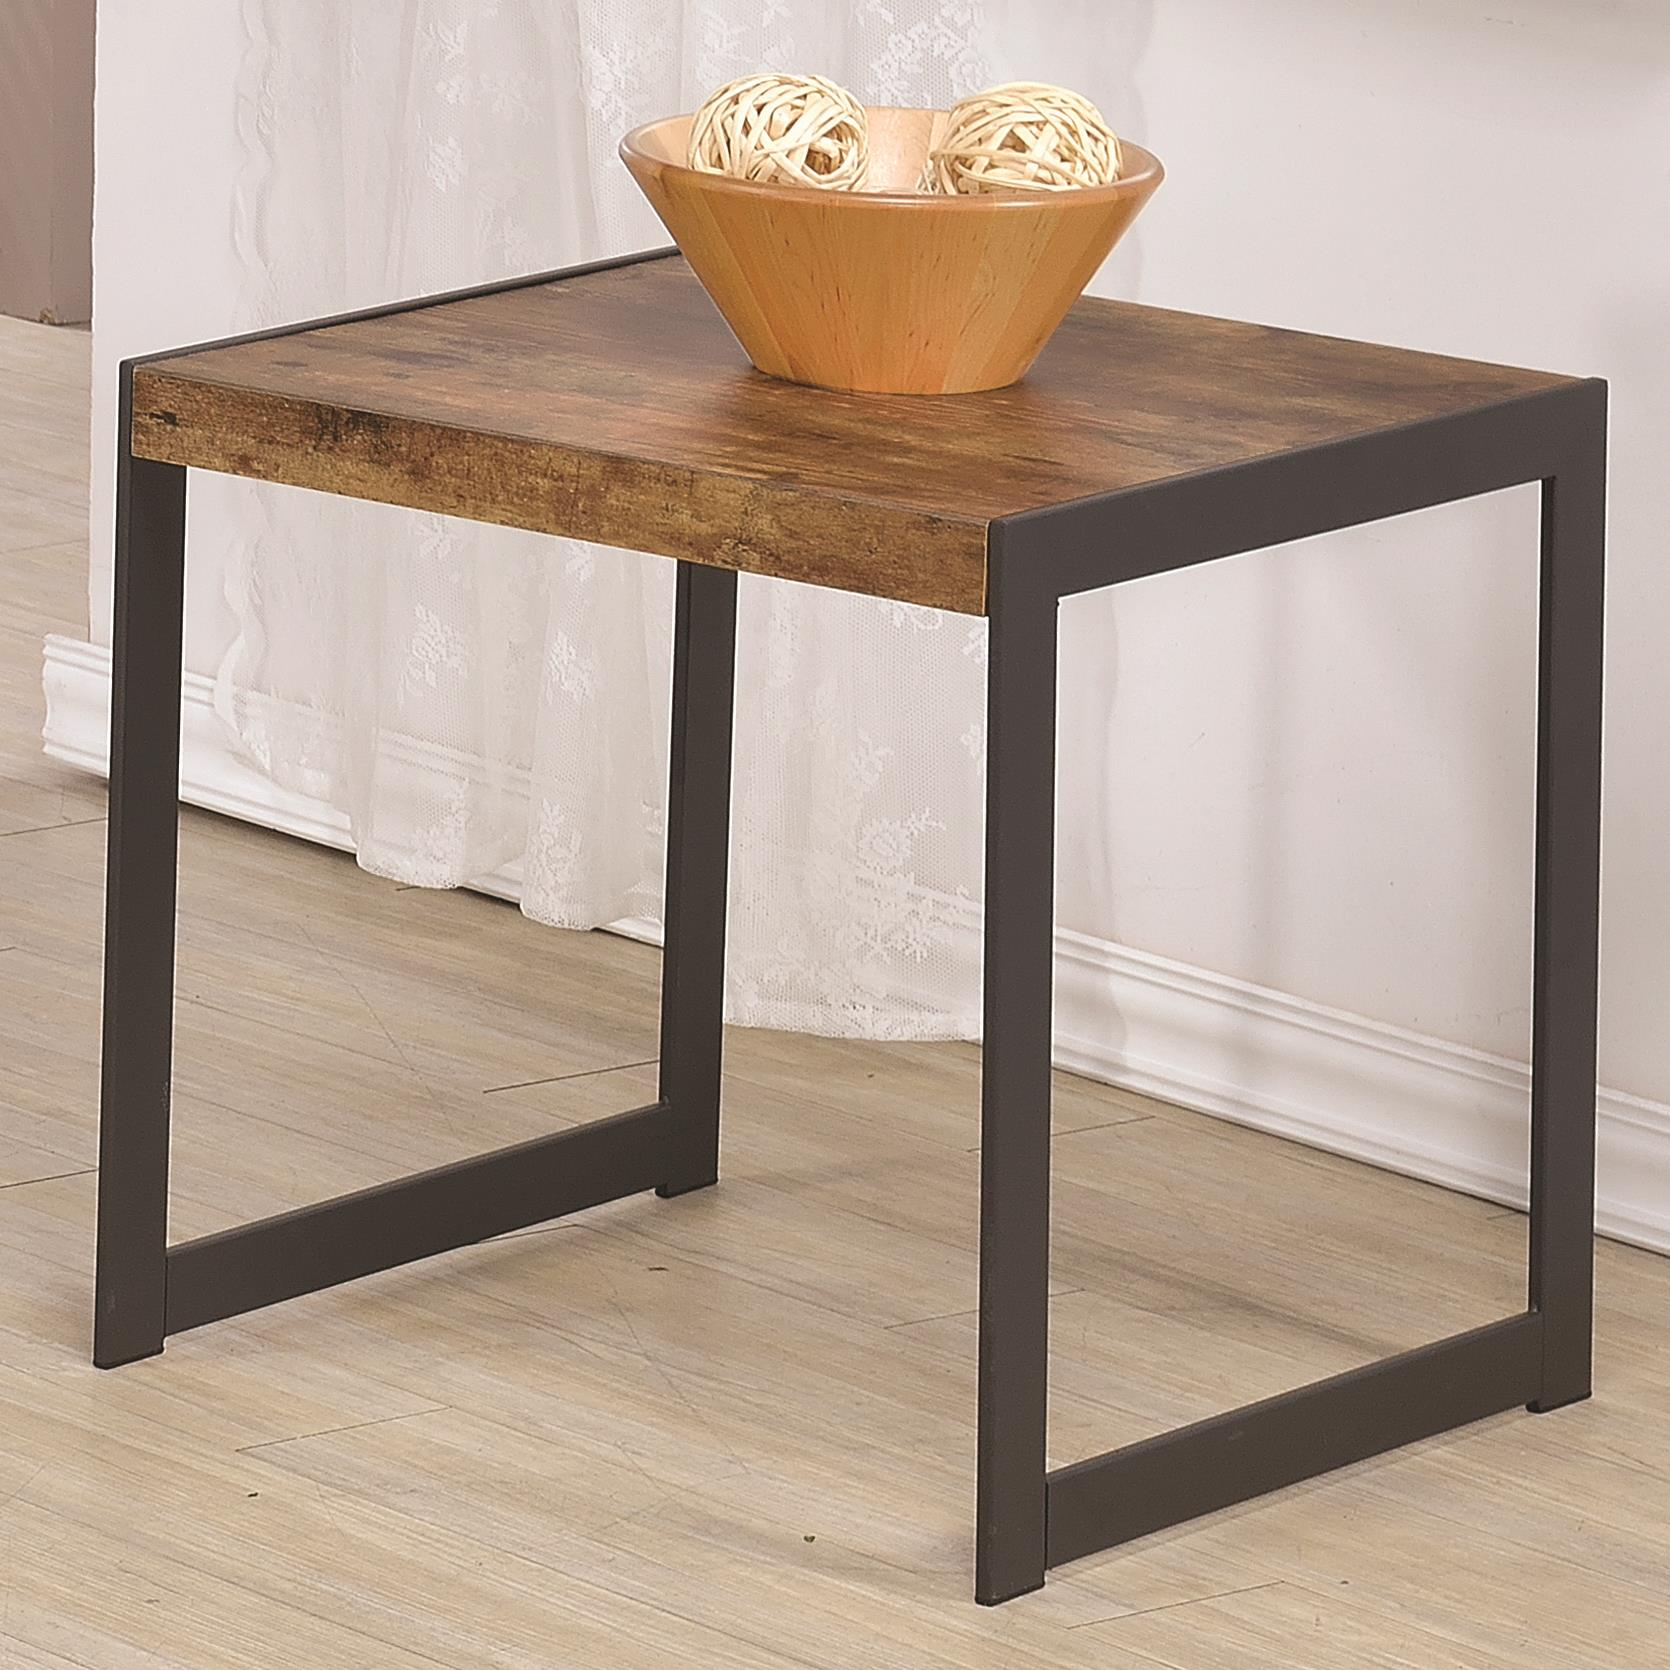 Coaster 70402 704027 rustic end table w metal base dunk for Bright colored side tables